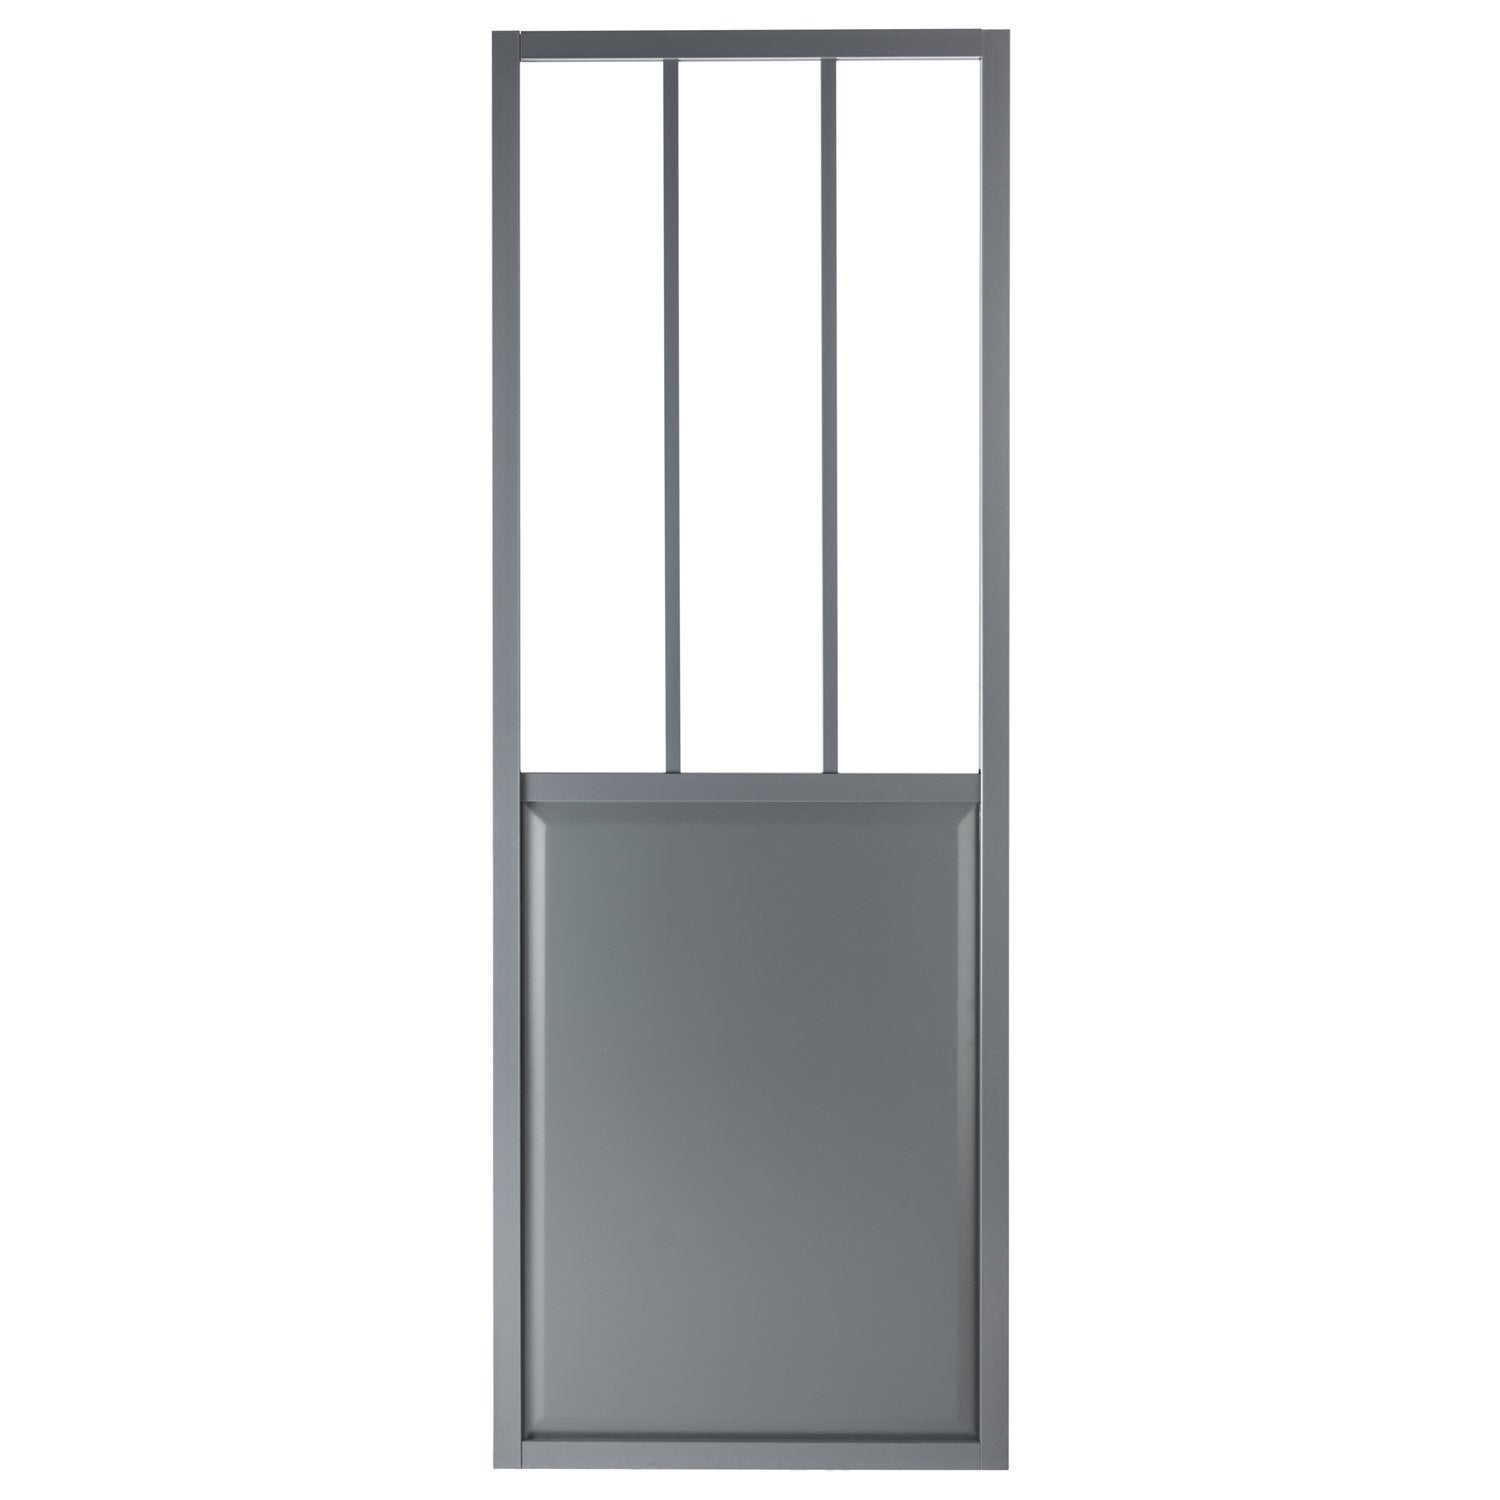 Porte coulissante aluminium gris fonc verre tremp for Fenetre verre securit